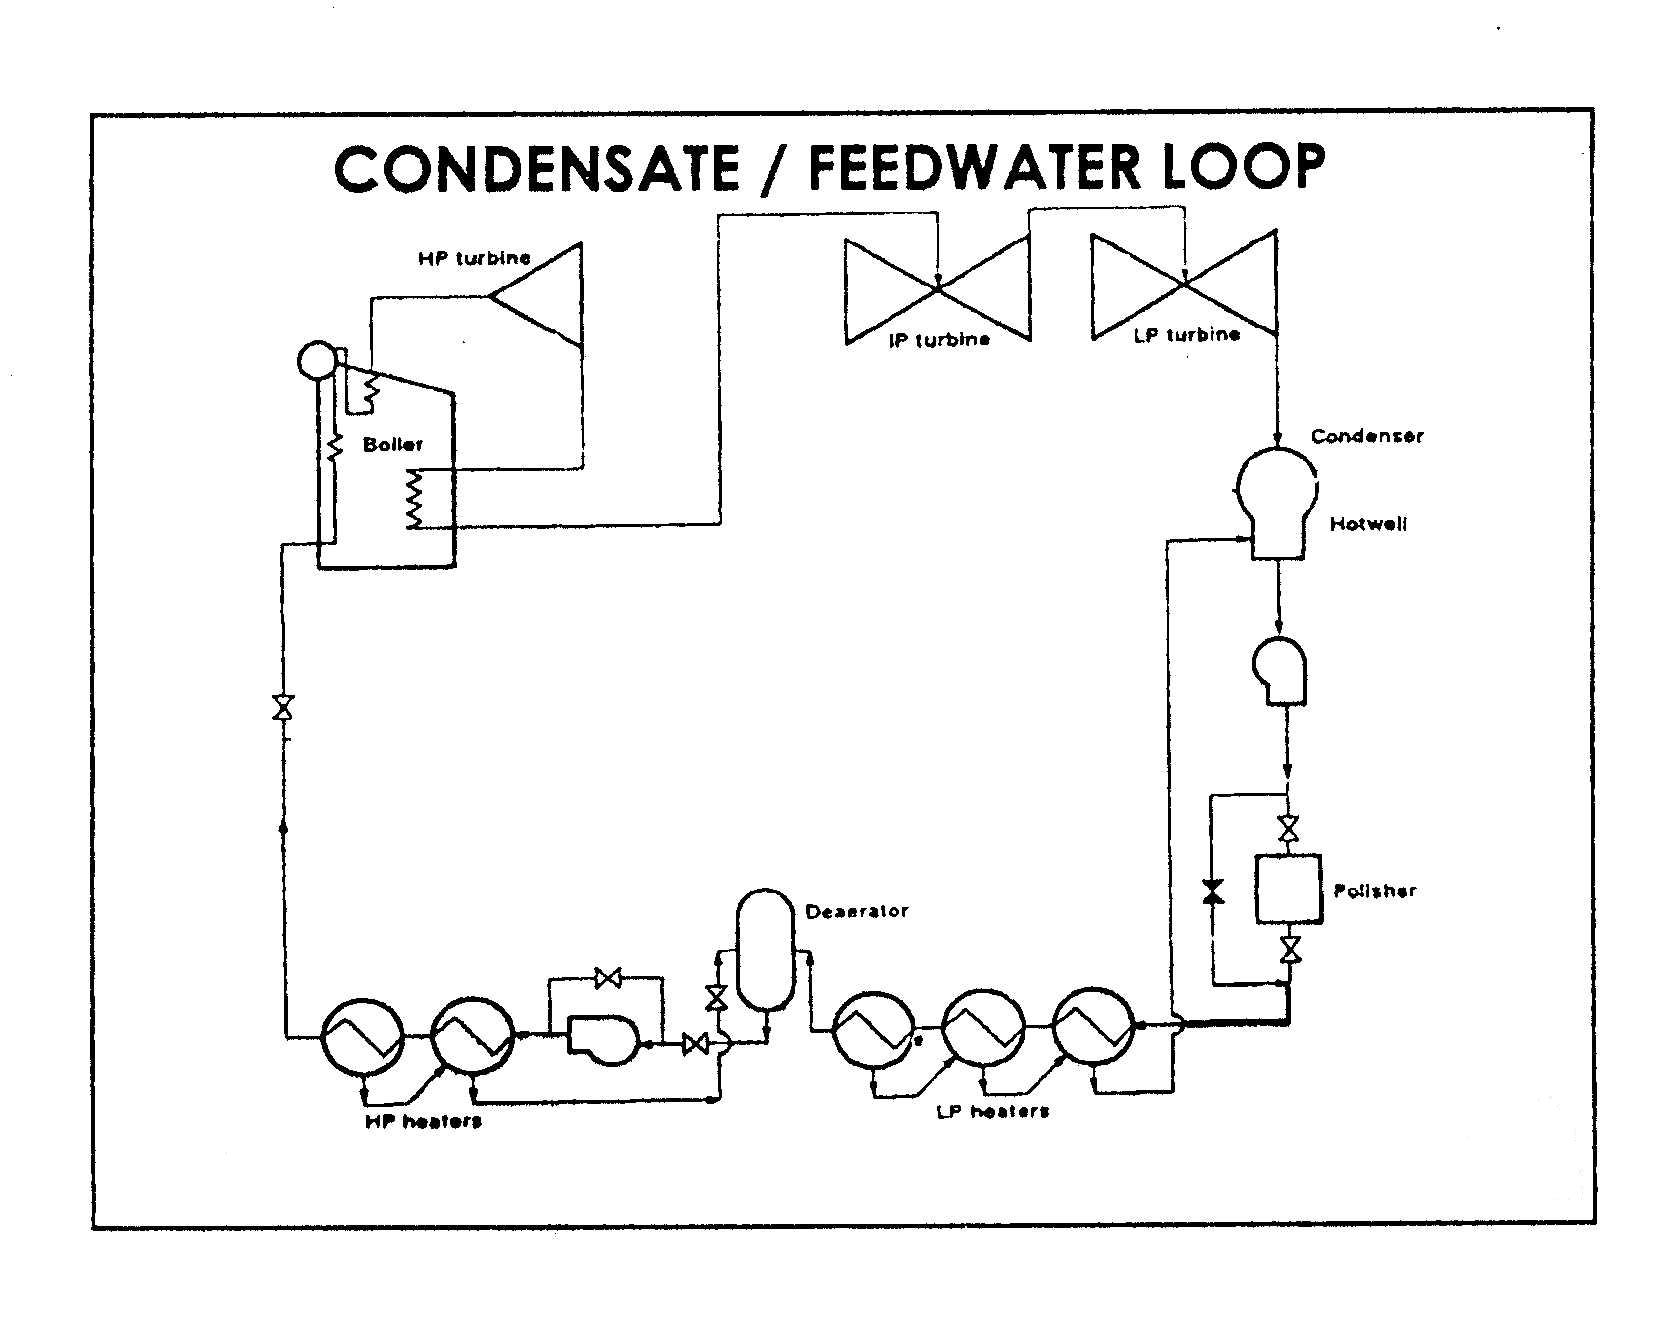 Fig-1 shows the location of the condensate polisher in the boiler turbine  circuit.